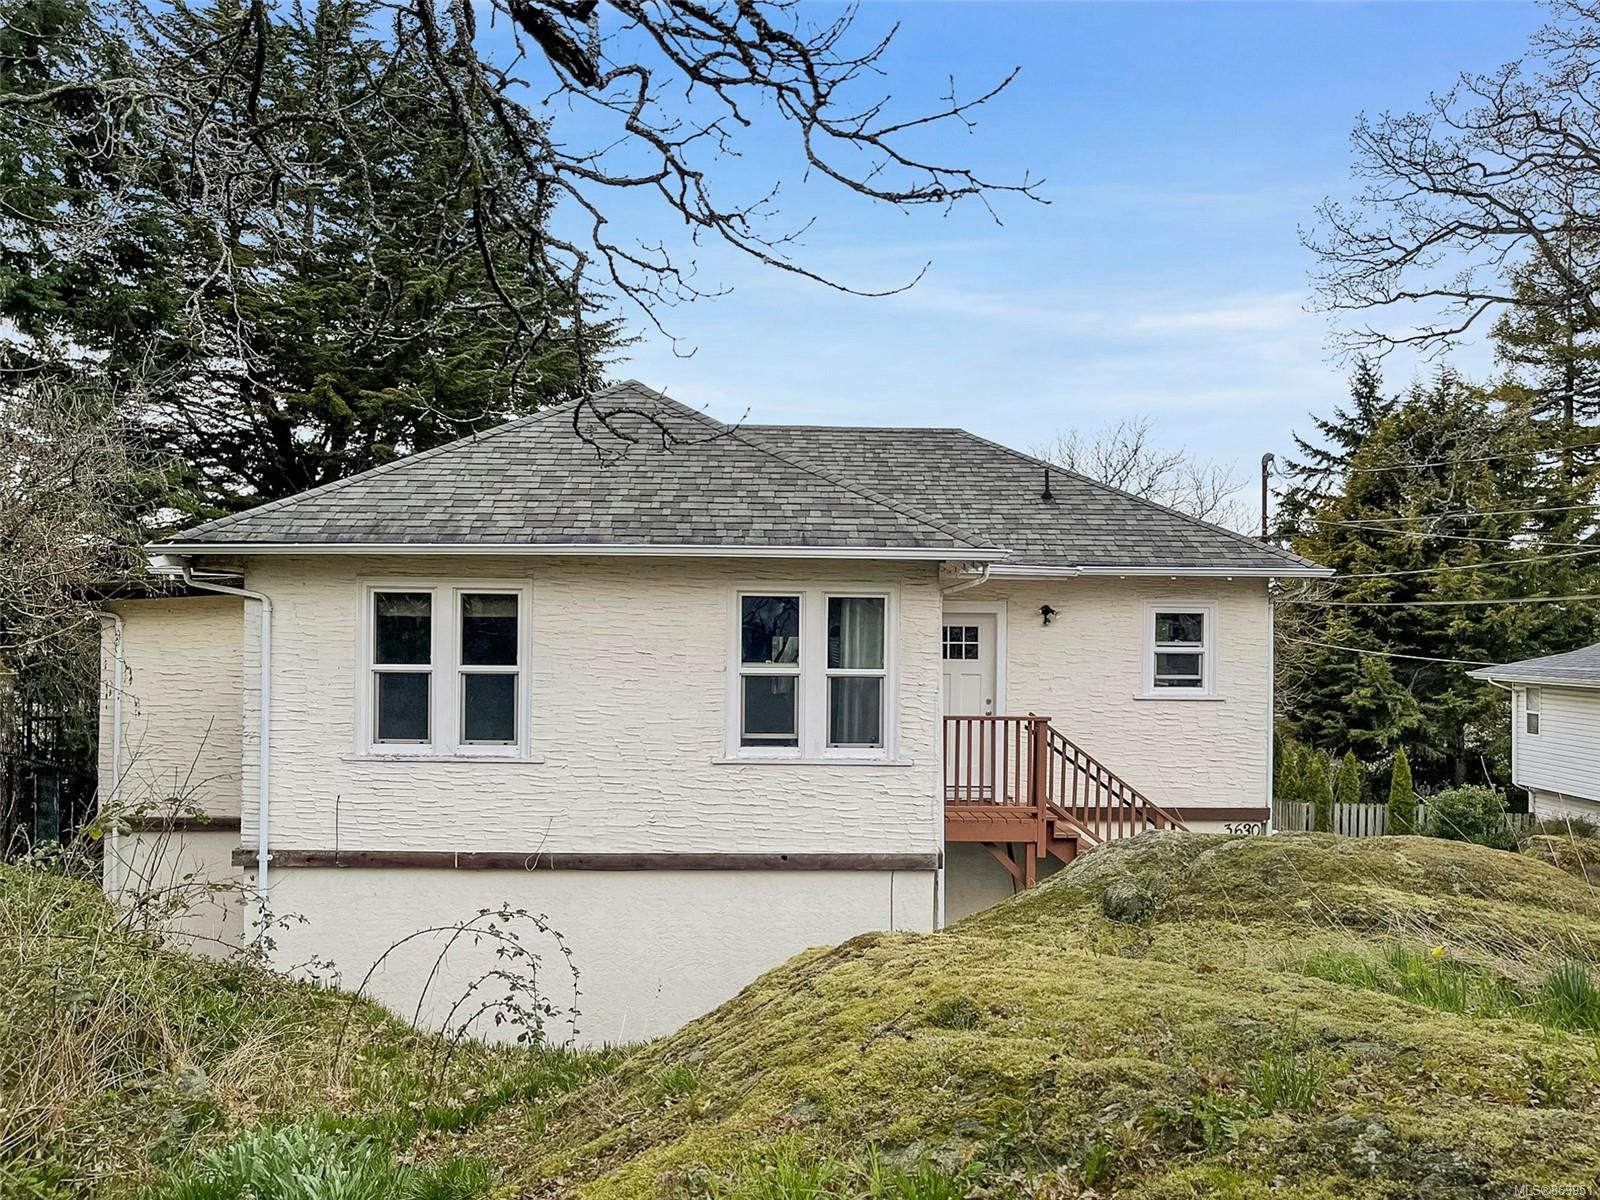 Main Photo: 3630 Craigmillar Ave in : SE Maplewood House for sale (Saanich East)  : MLS®# 869951